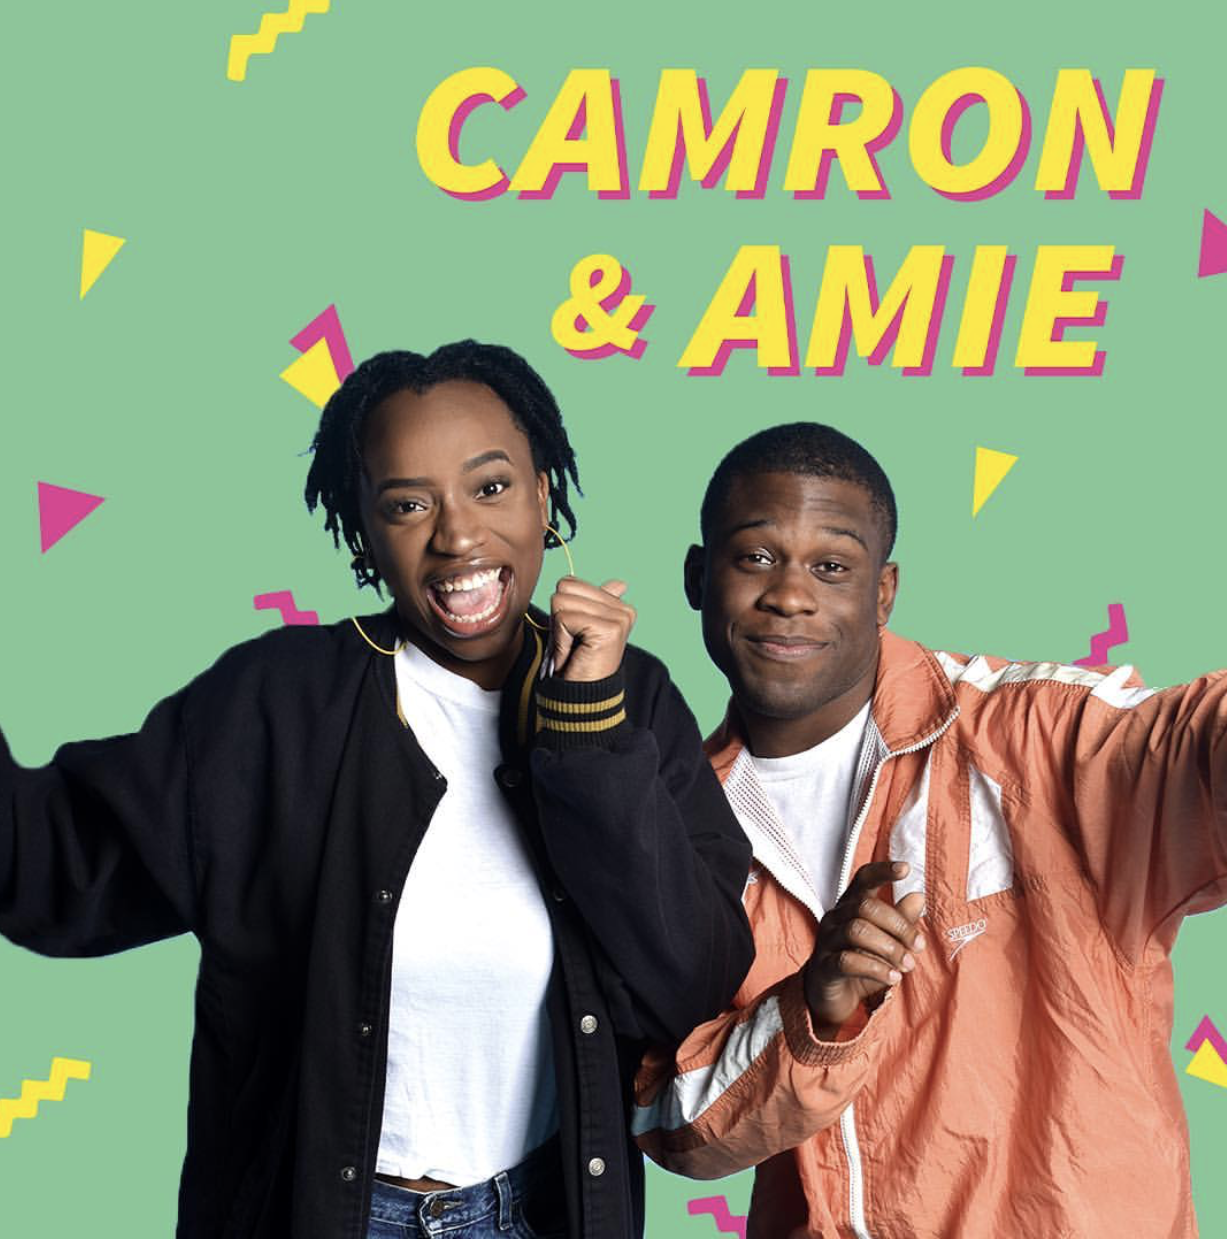 Camron Goodman and Amie Jean, 2019-2020 Executive Alliance